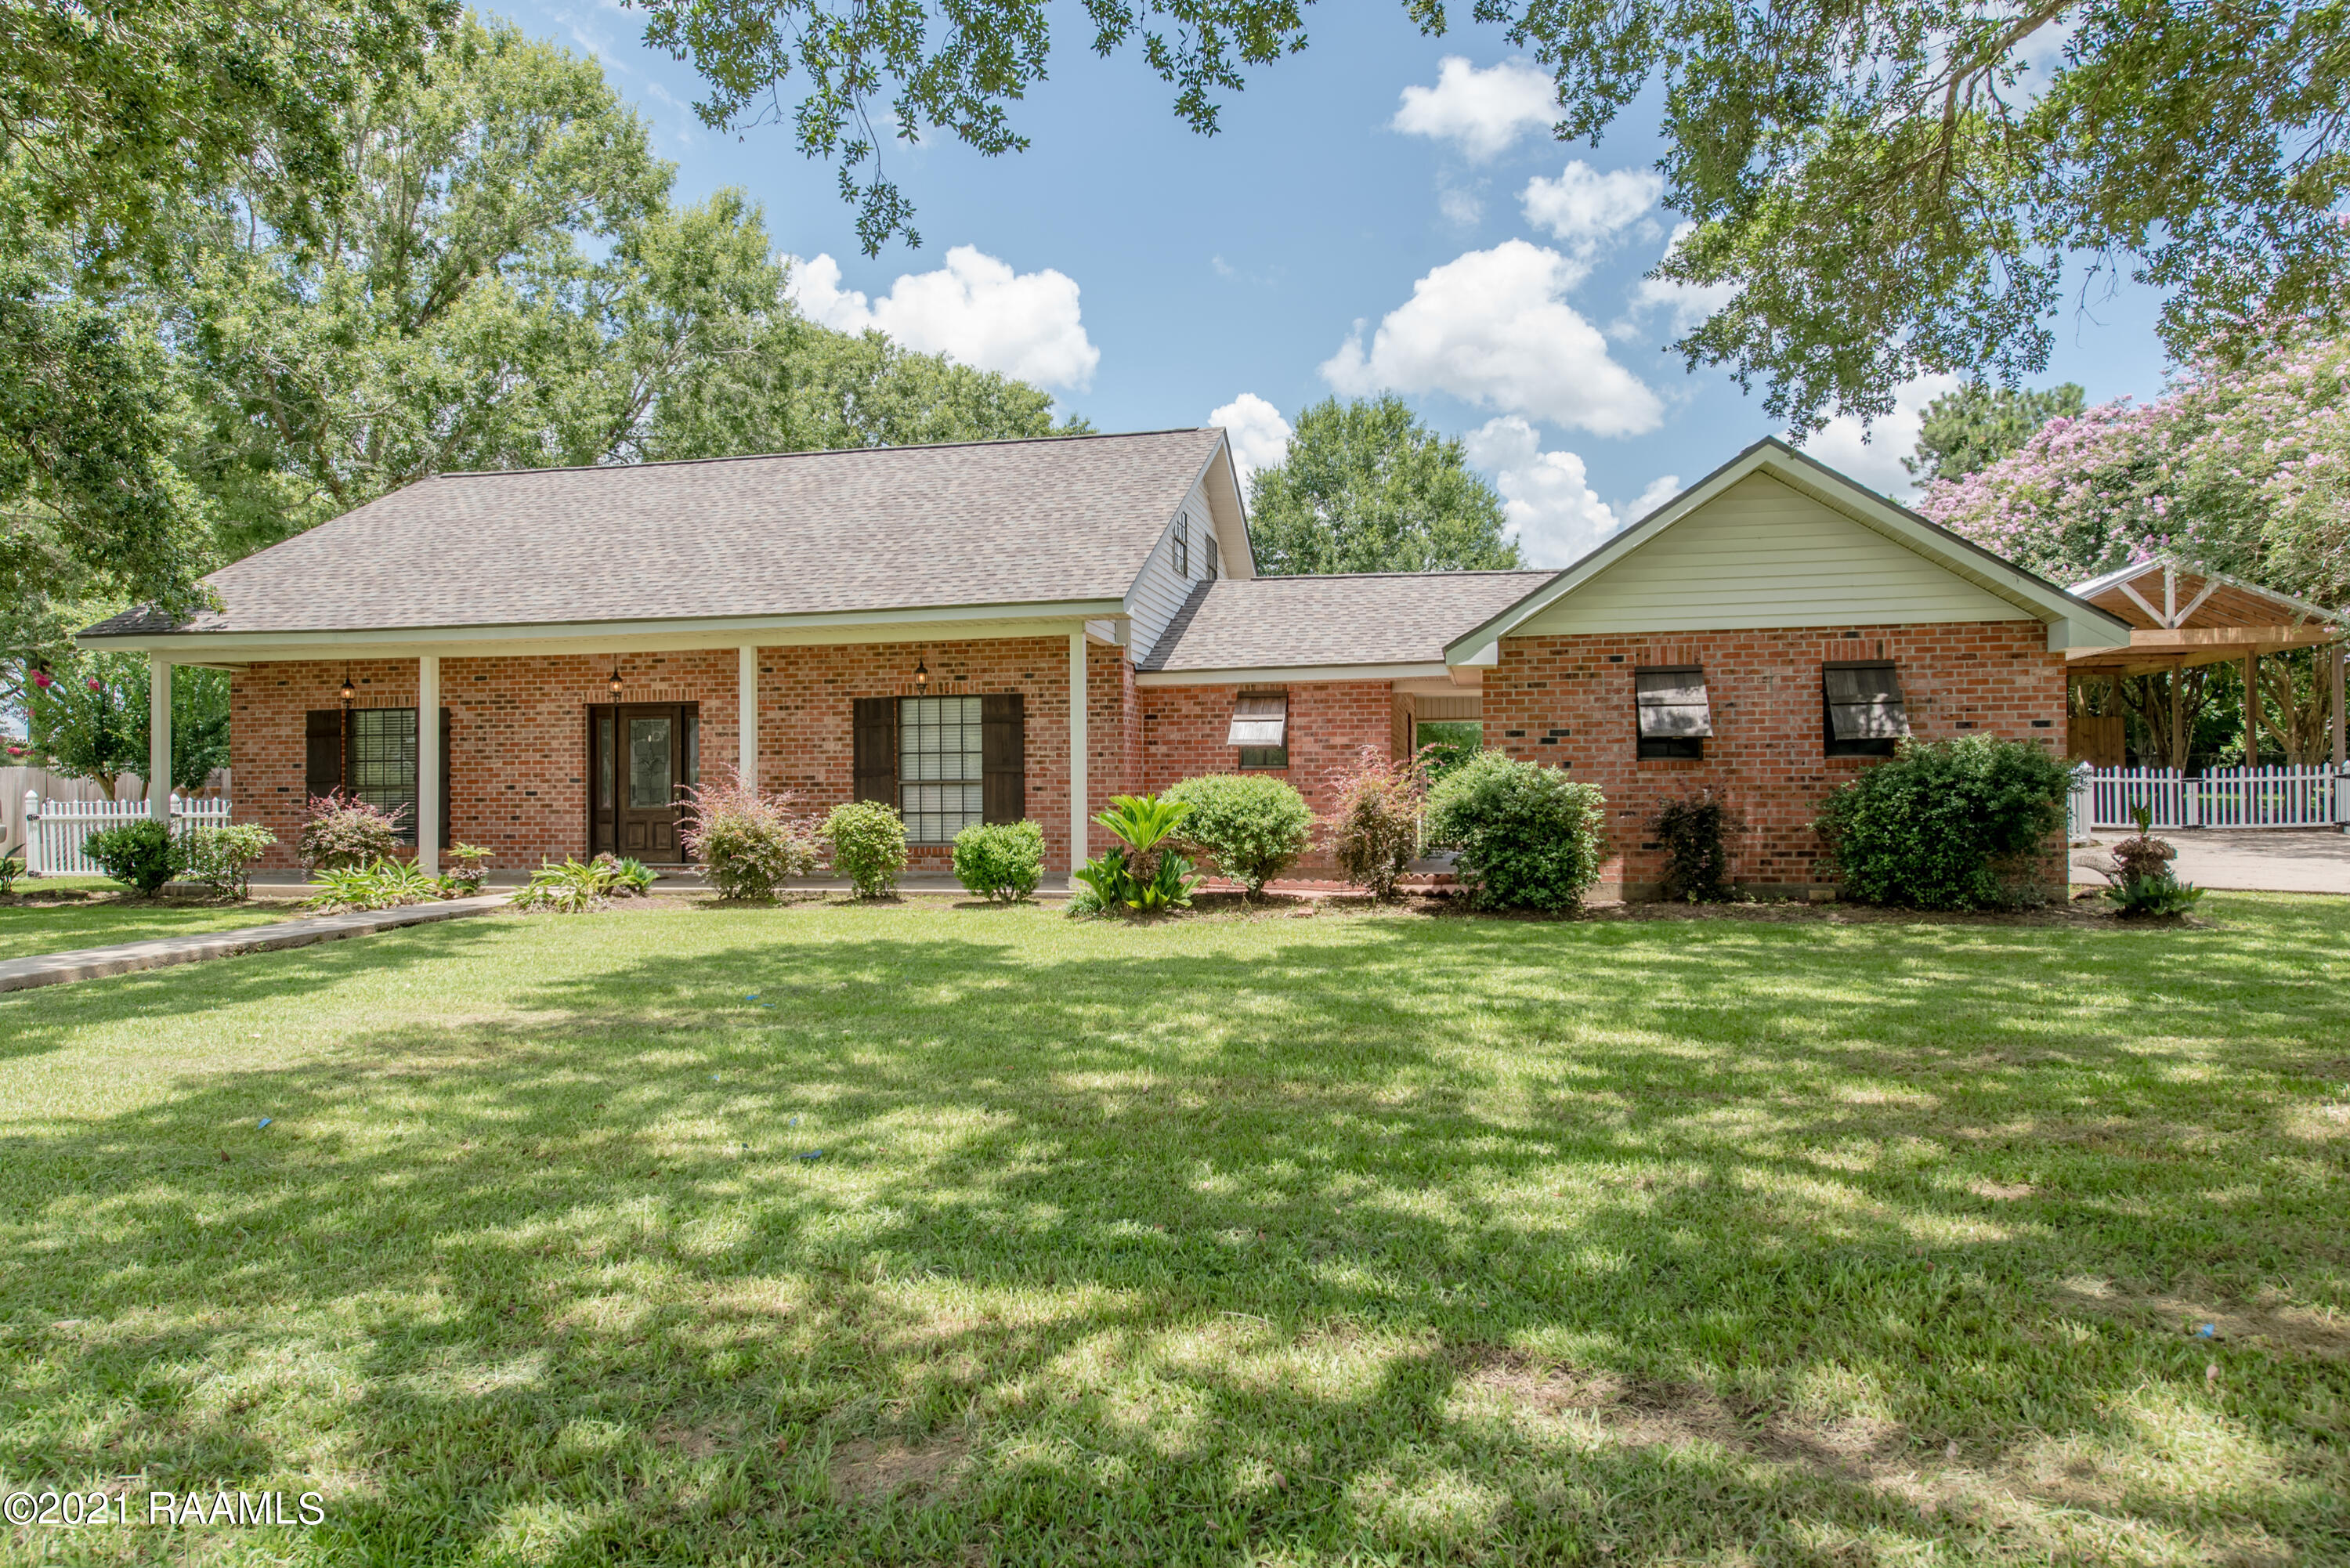 116 Countryview Drive, Youngsville, LA 70592 Photo #1